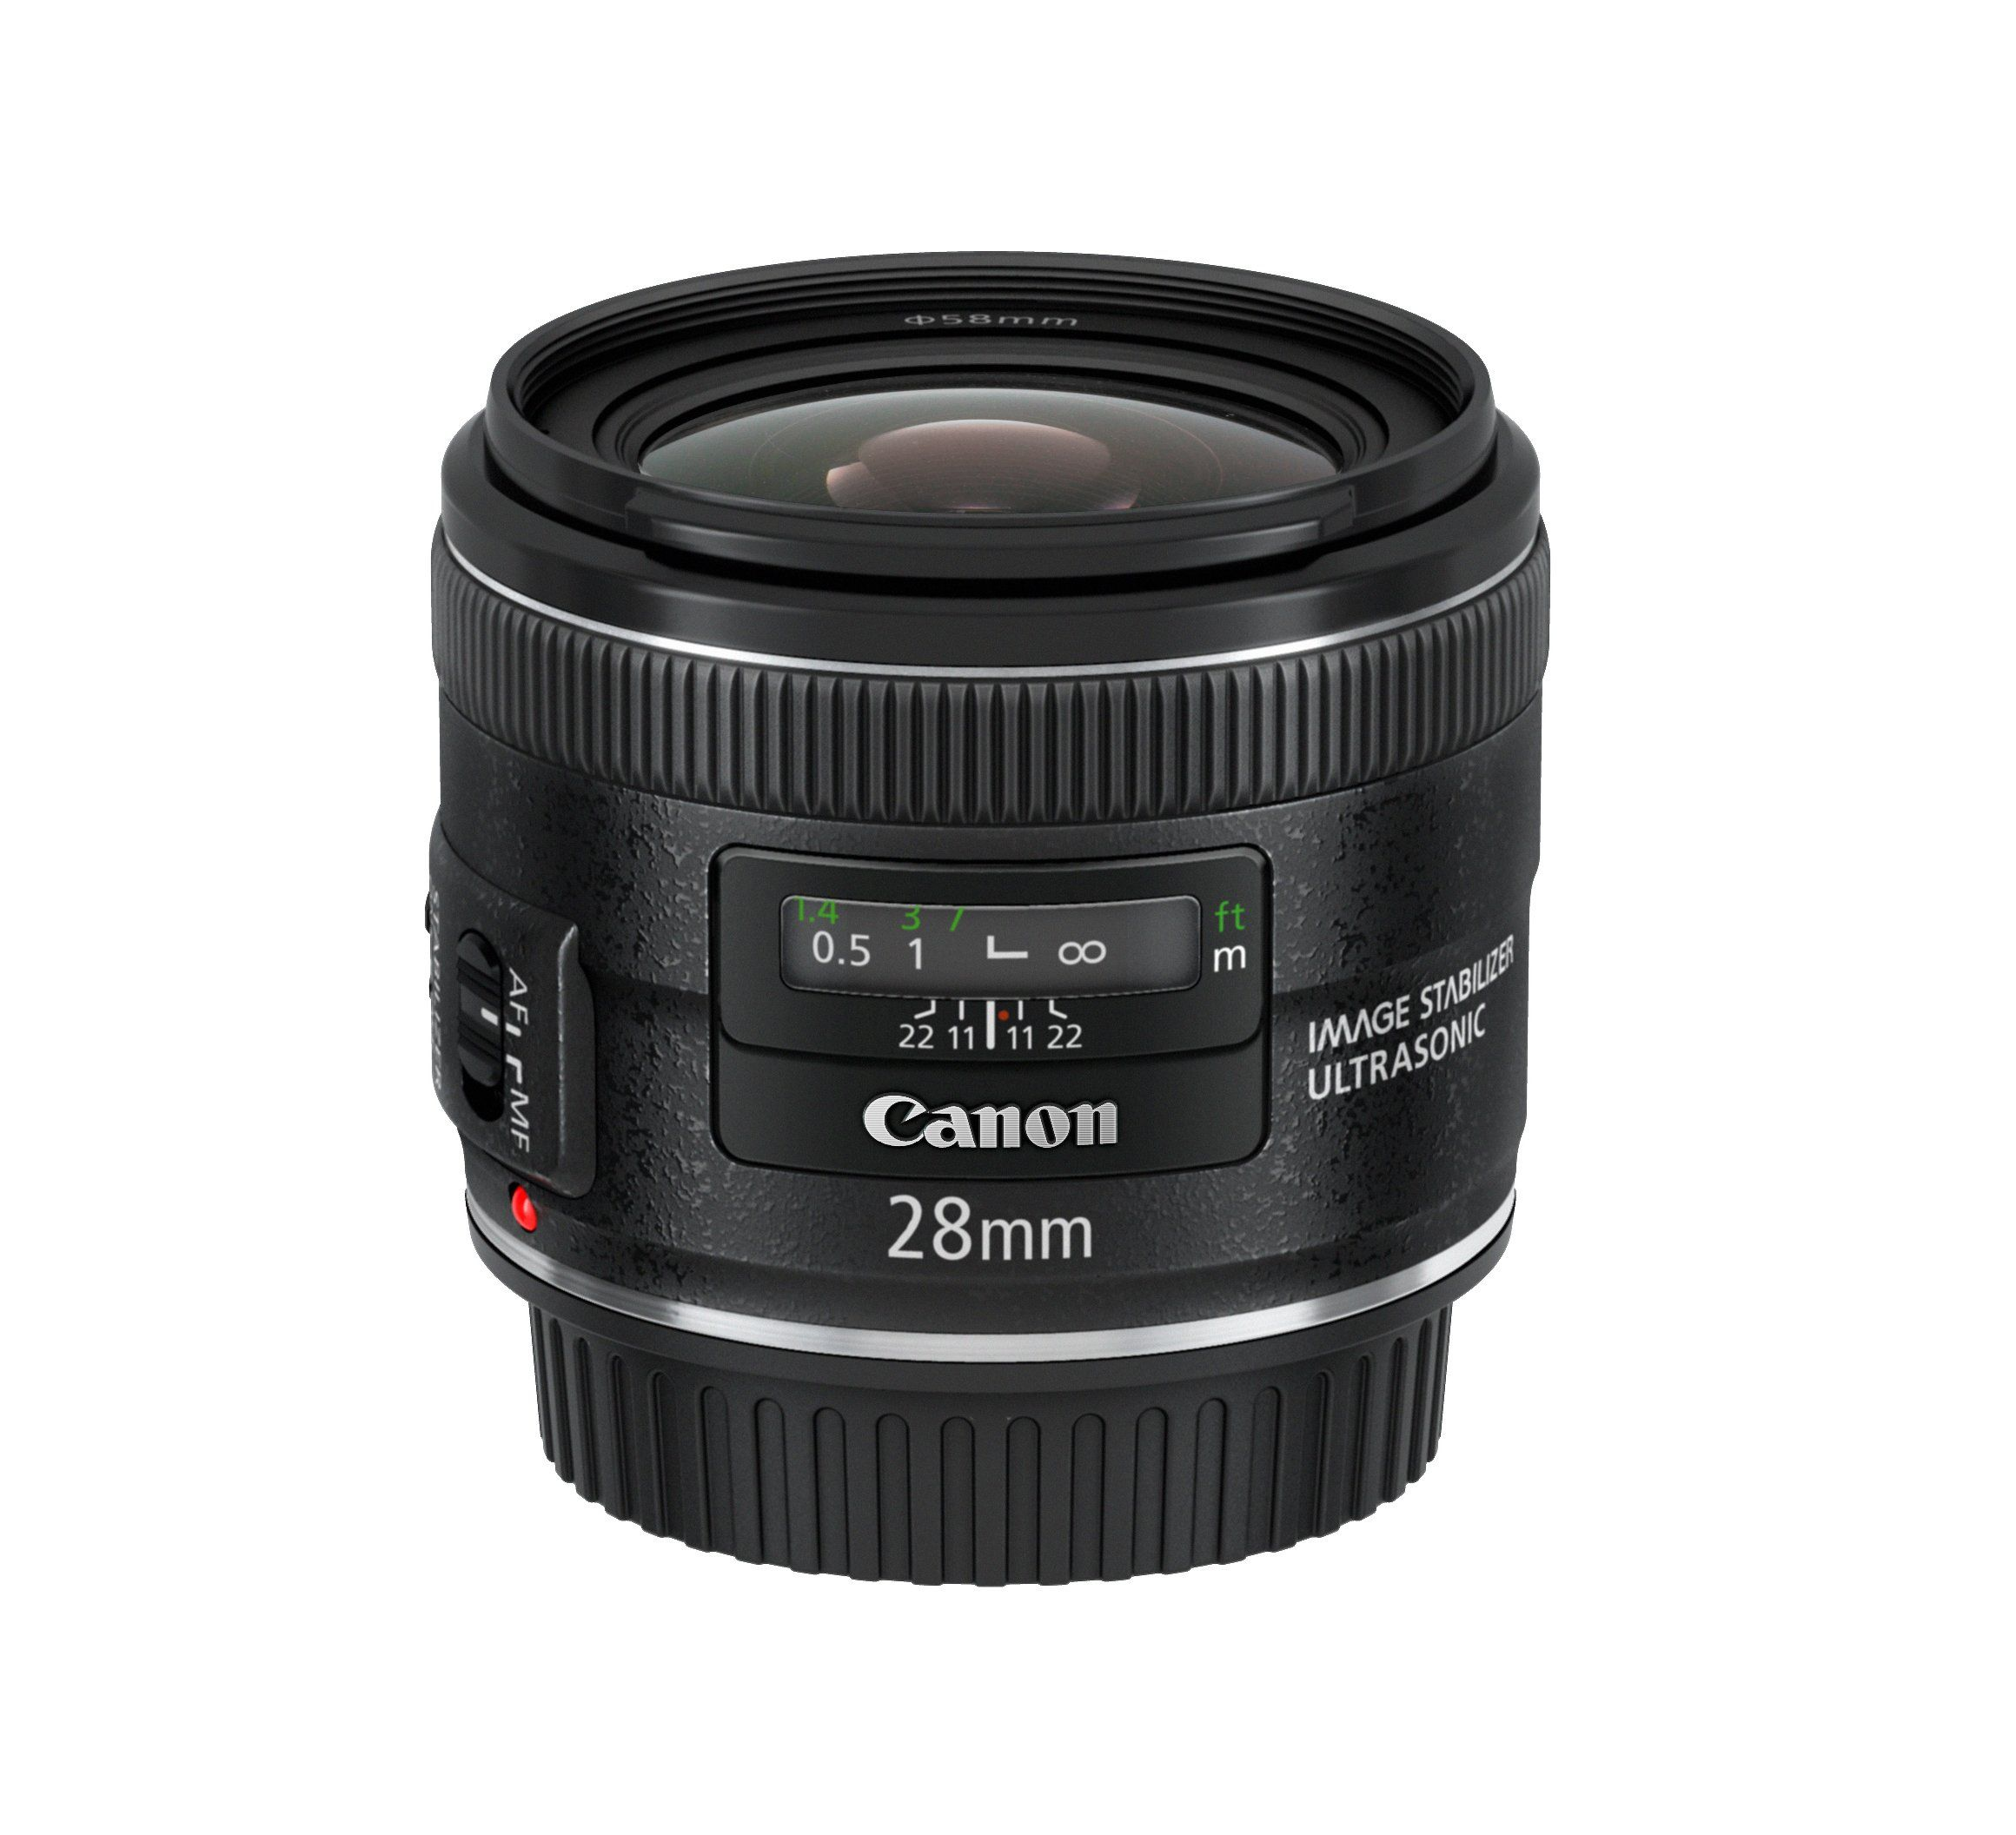 Canon EF 28mm f/2.8 IS USM Wide Angle Lens | { Wish List } | Pinterest